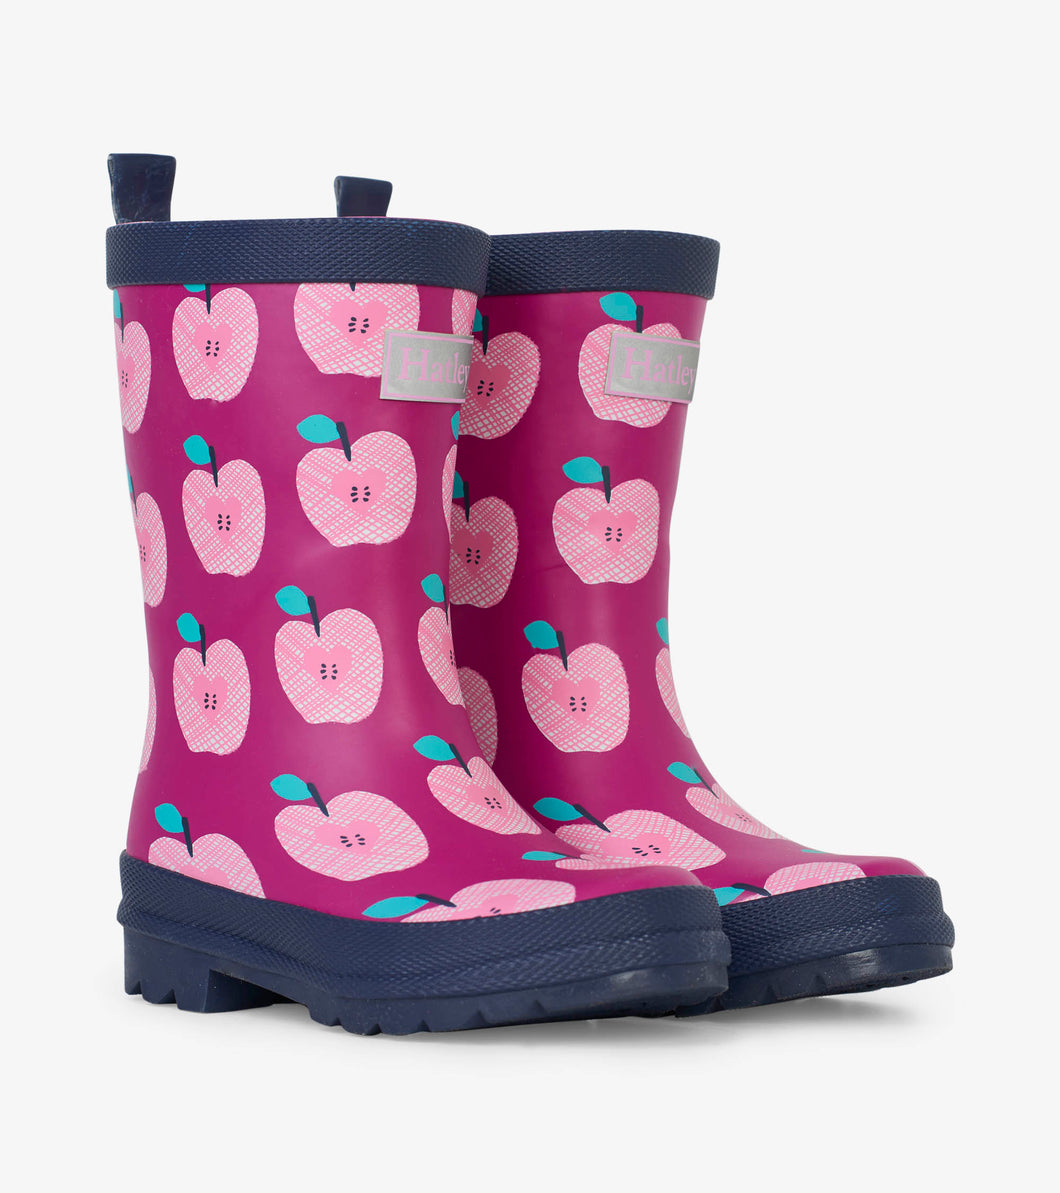 NEW AW19 Hatley Apple Orchard Rain Boots